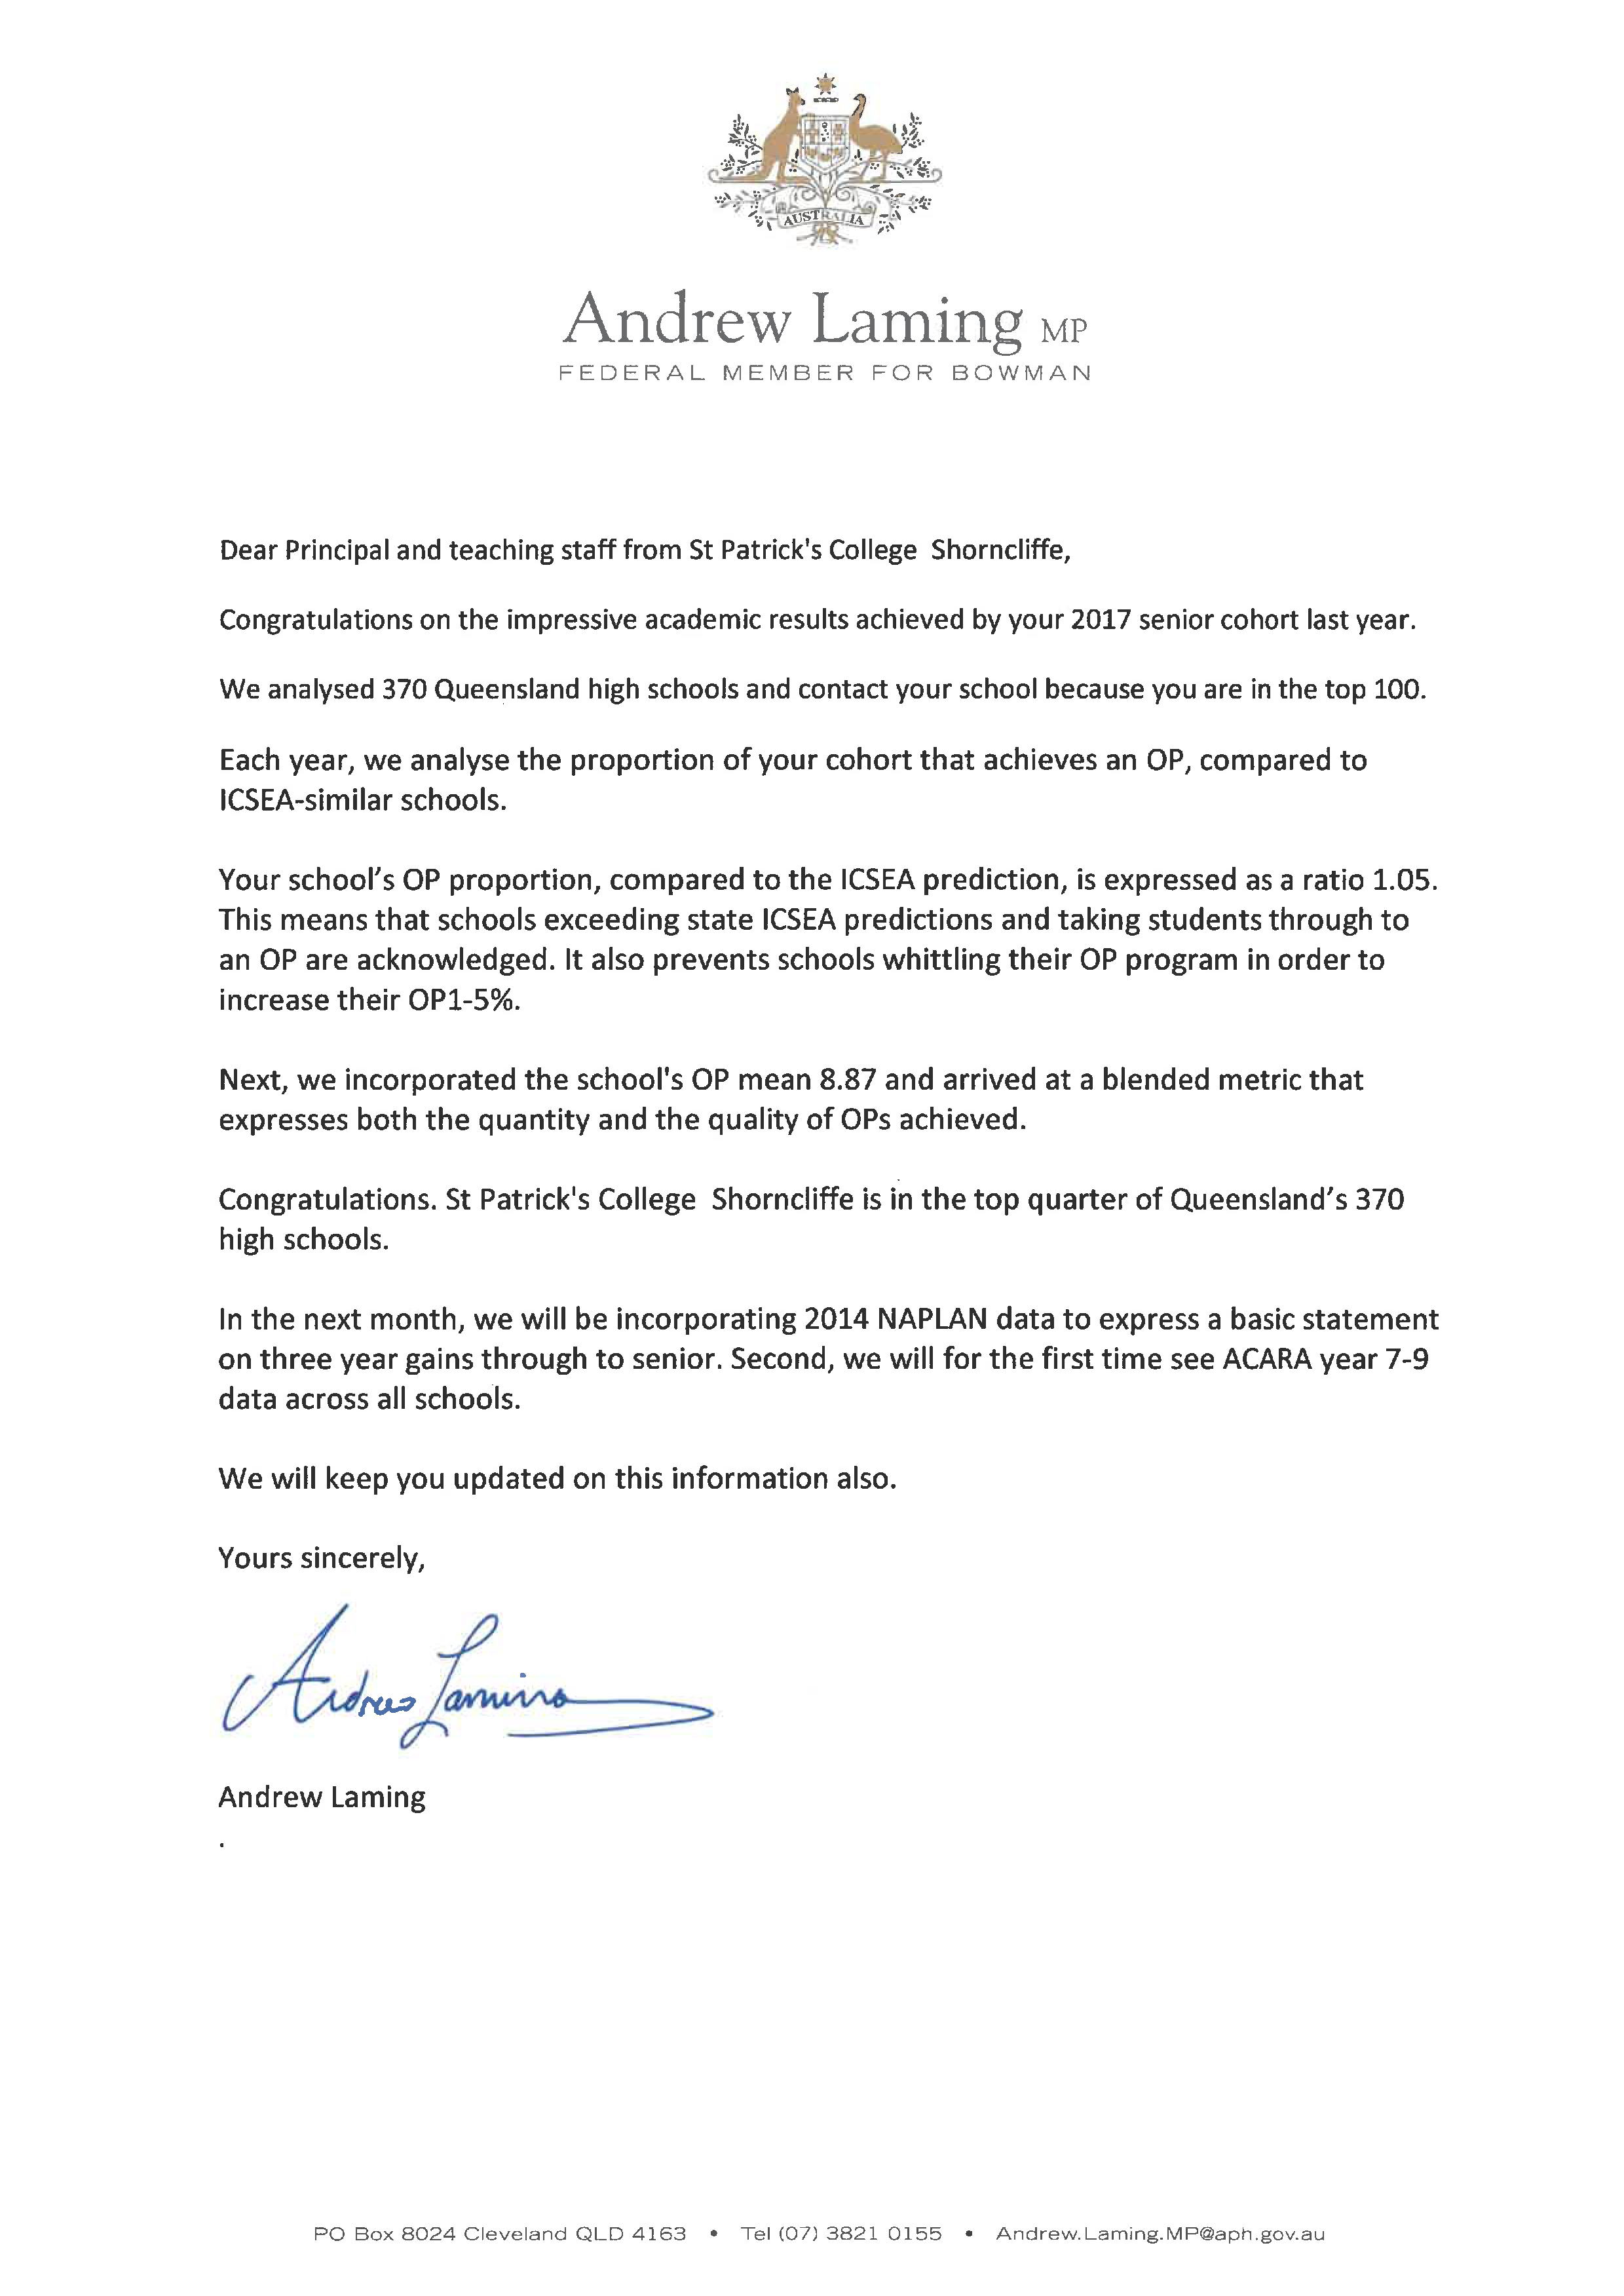 2017-OP-letter-from-Andrew-Laming-MP-002